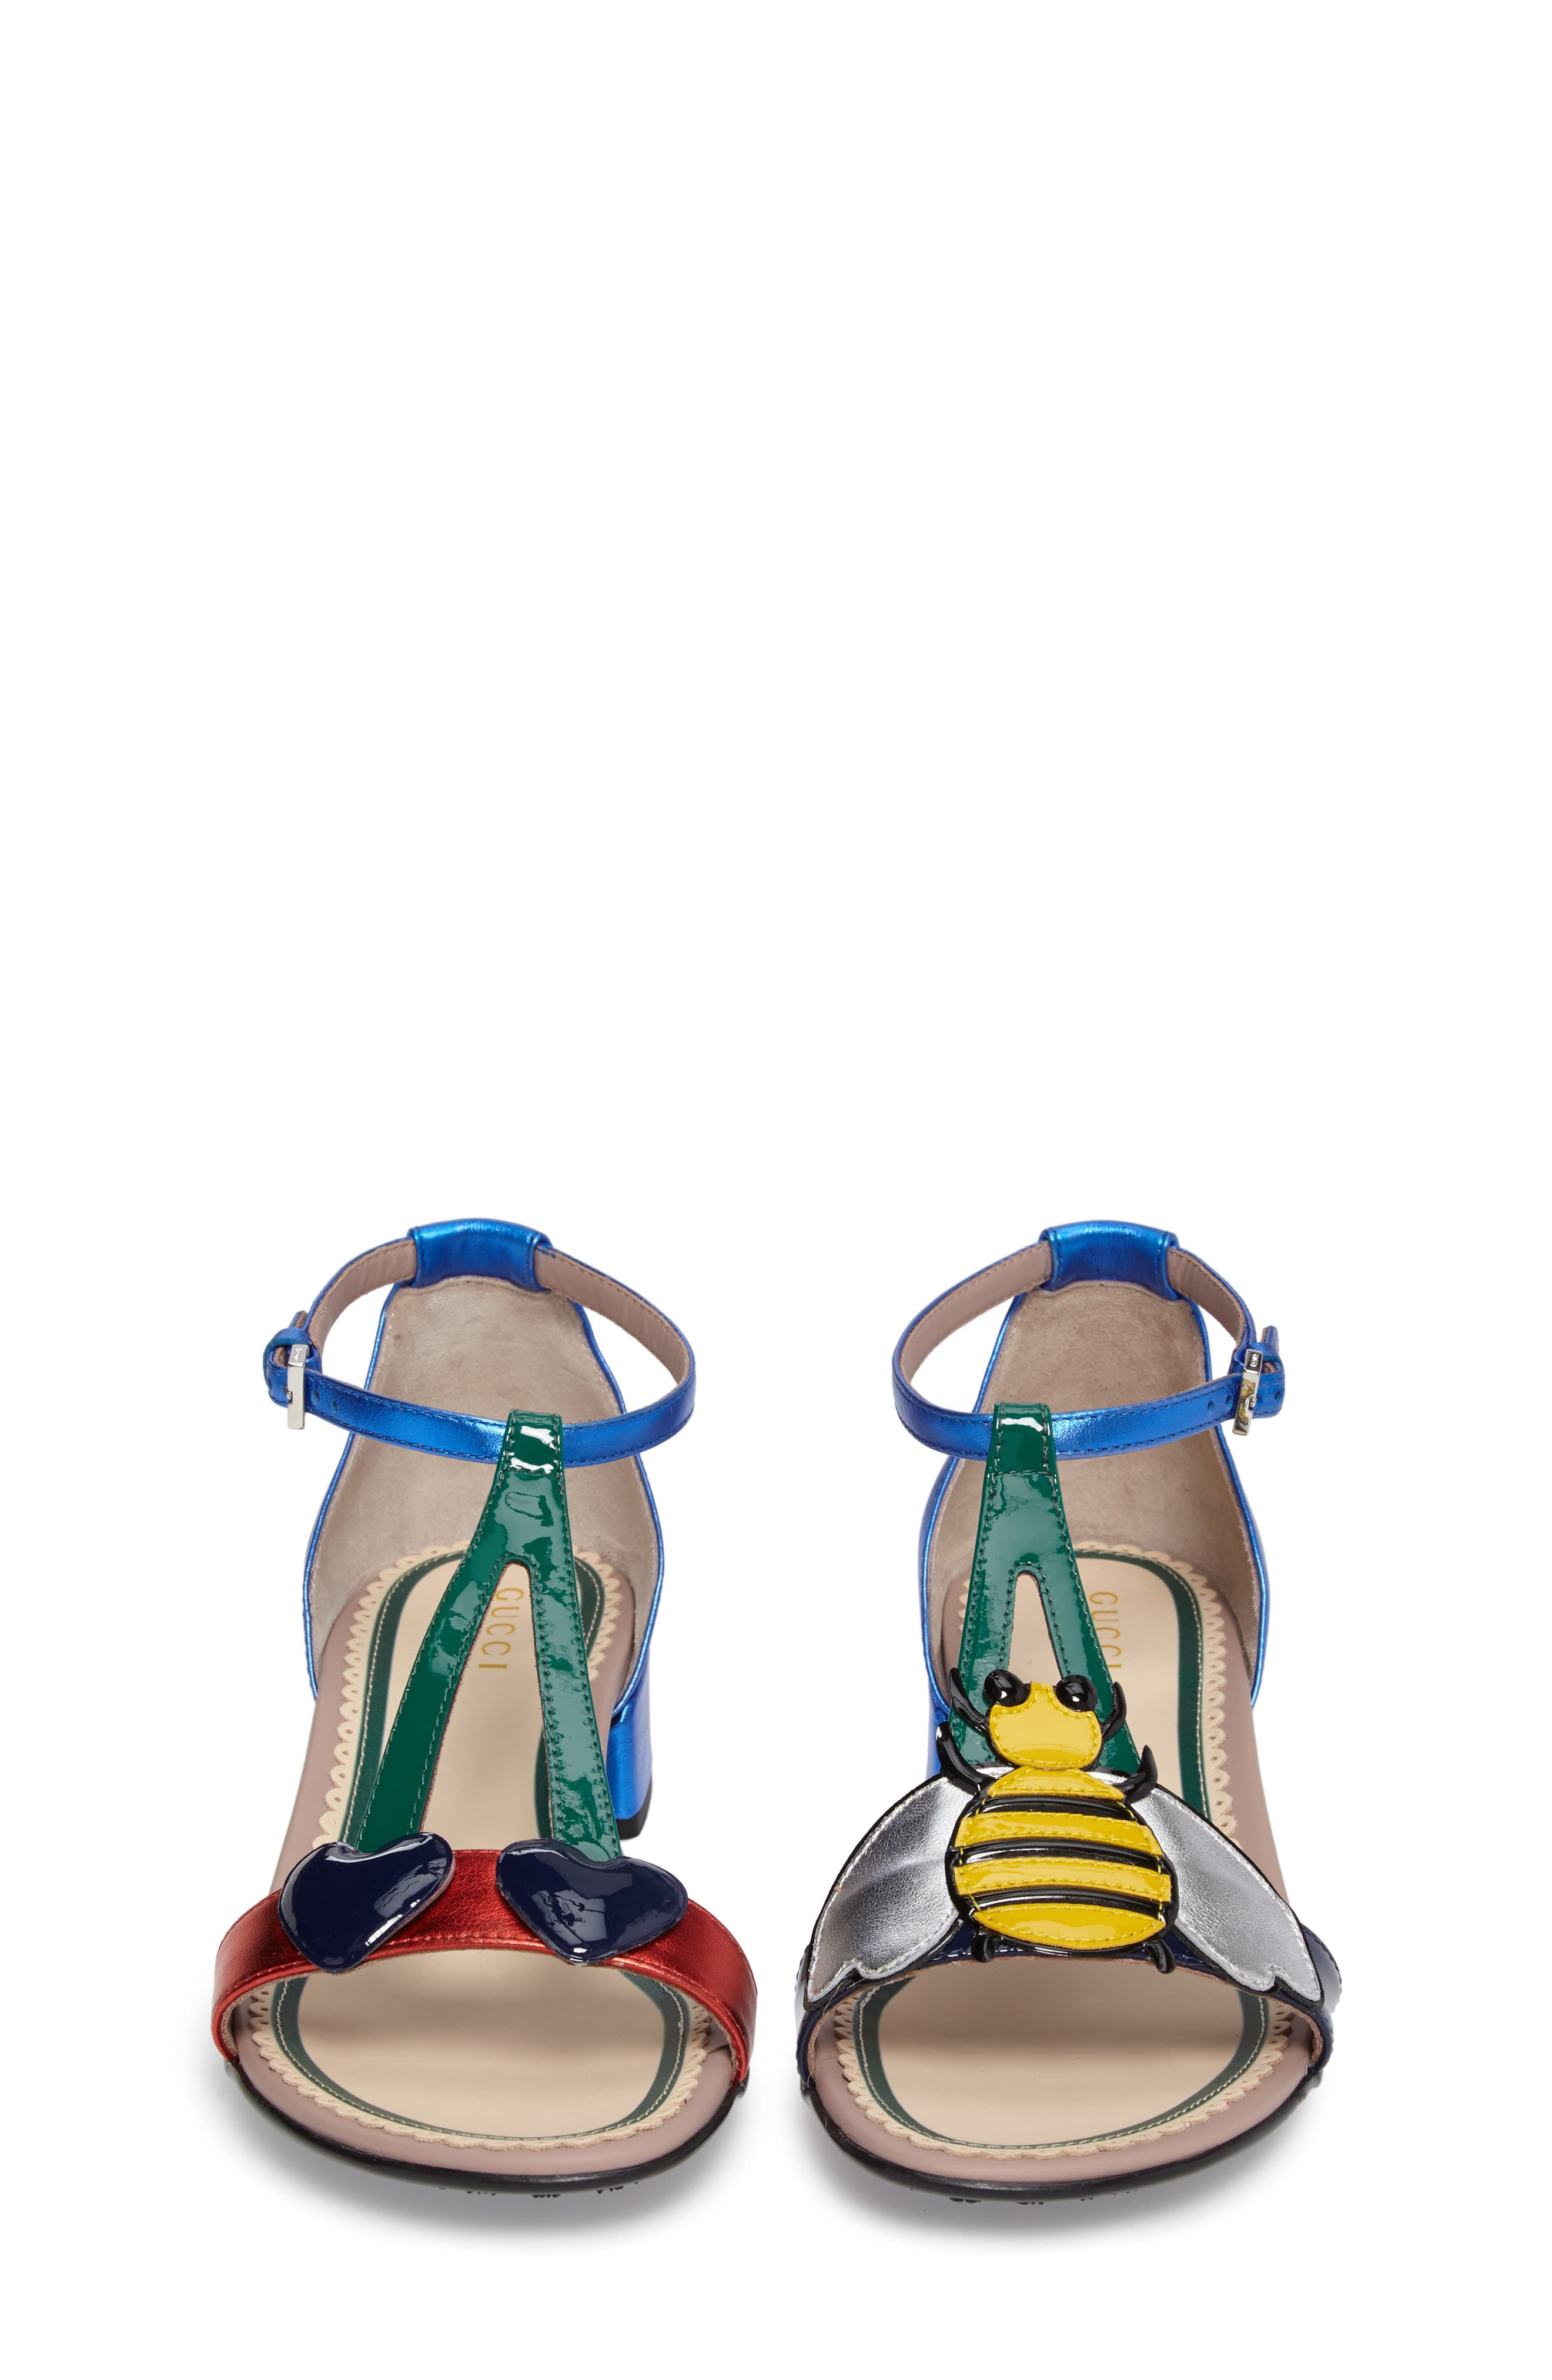 Bee & Cherry Sandal,                             Alternate thumbnail 4, color,                             400